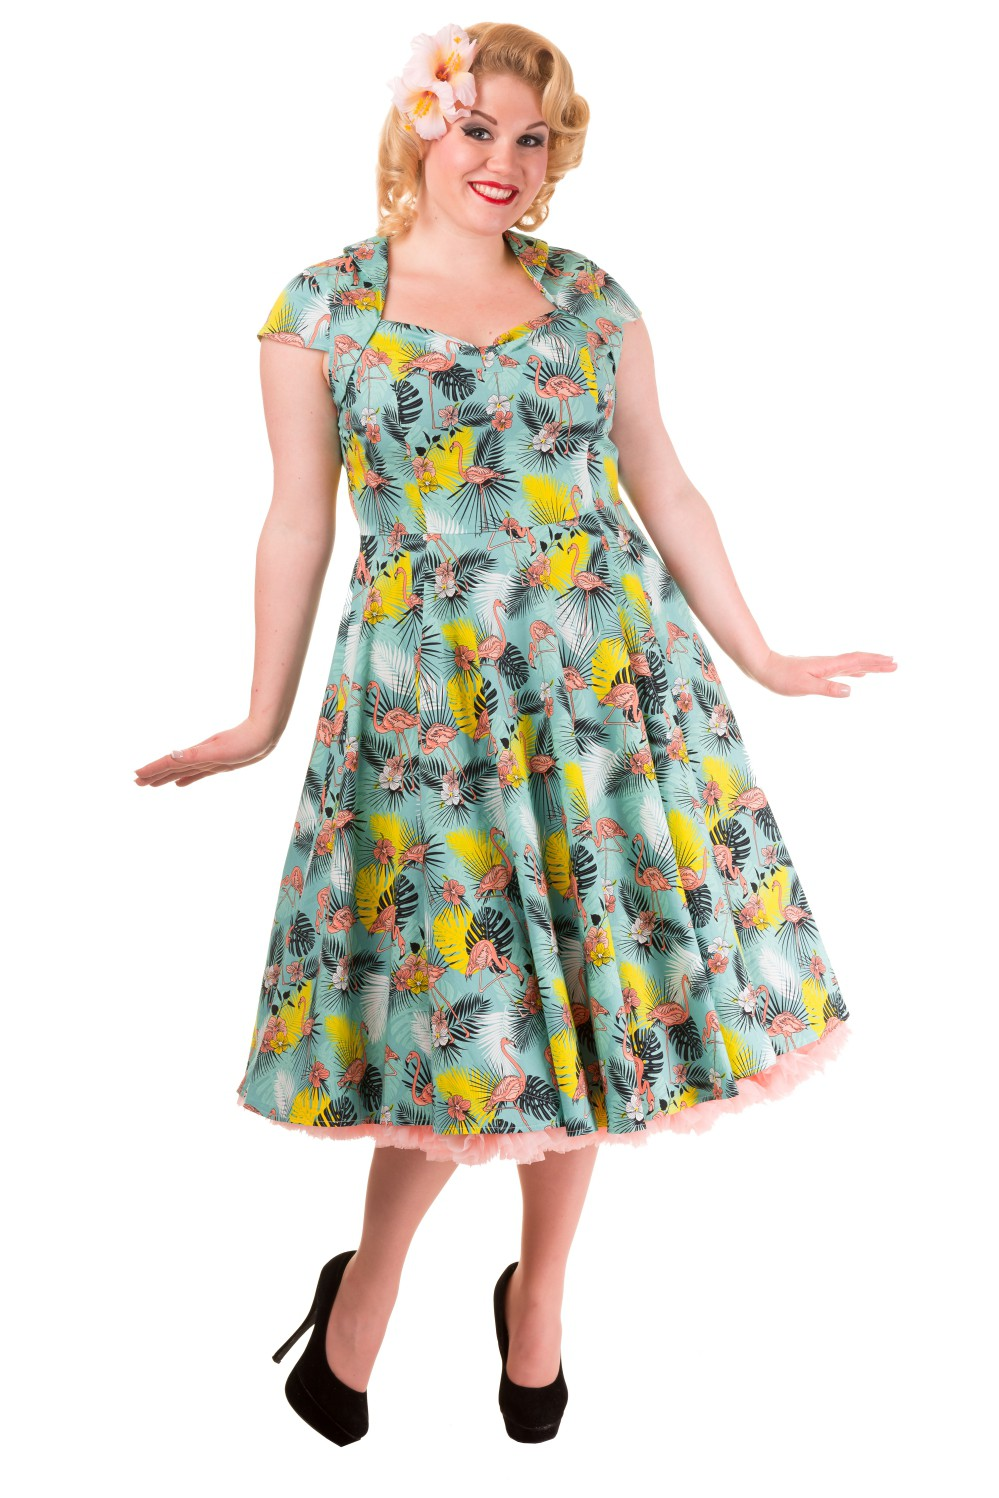 Banned Wanderlust Flamingo Rockabilly Shrug Dress | Banned Clothing ...